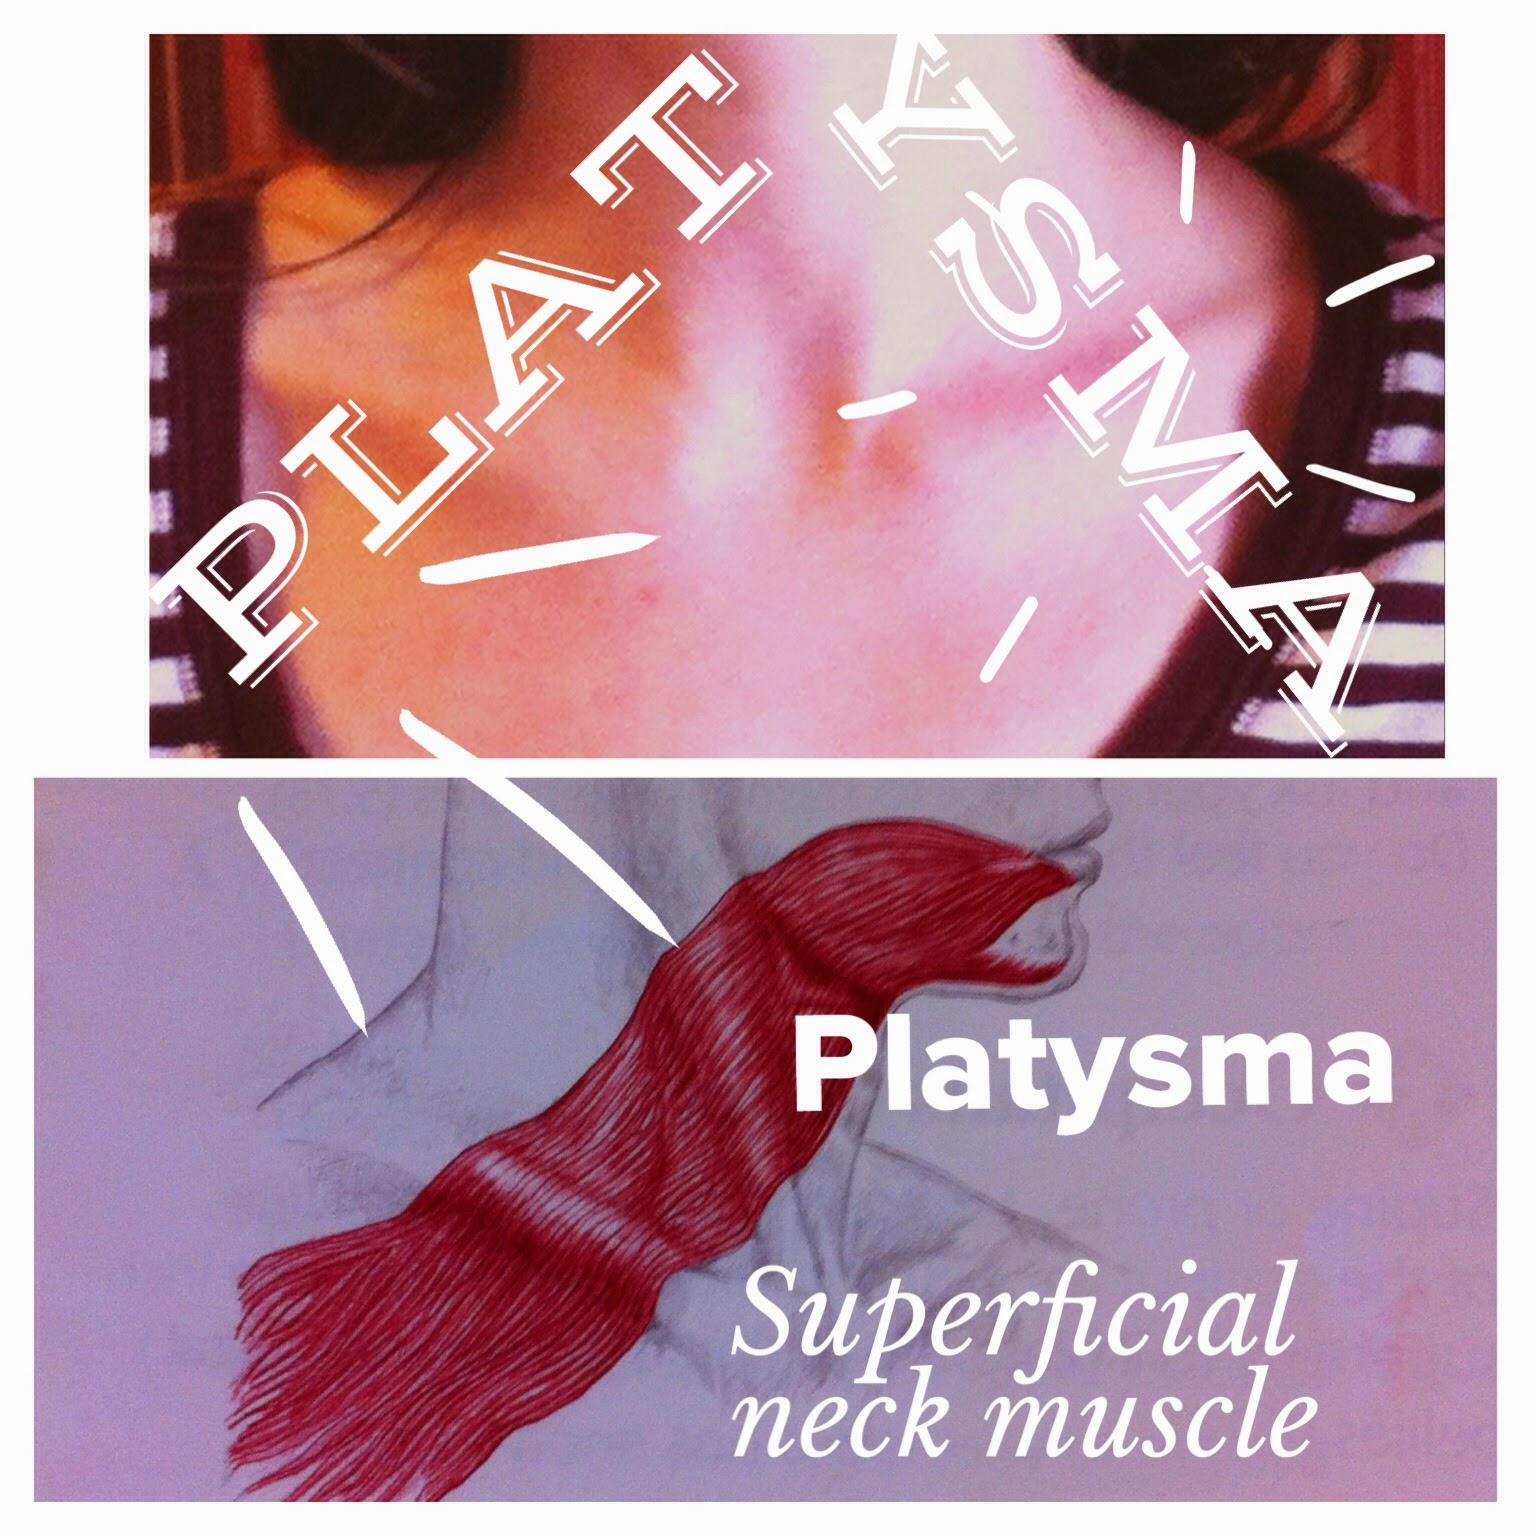 The Hip Joint Platysma